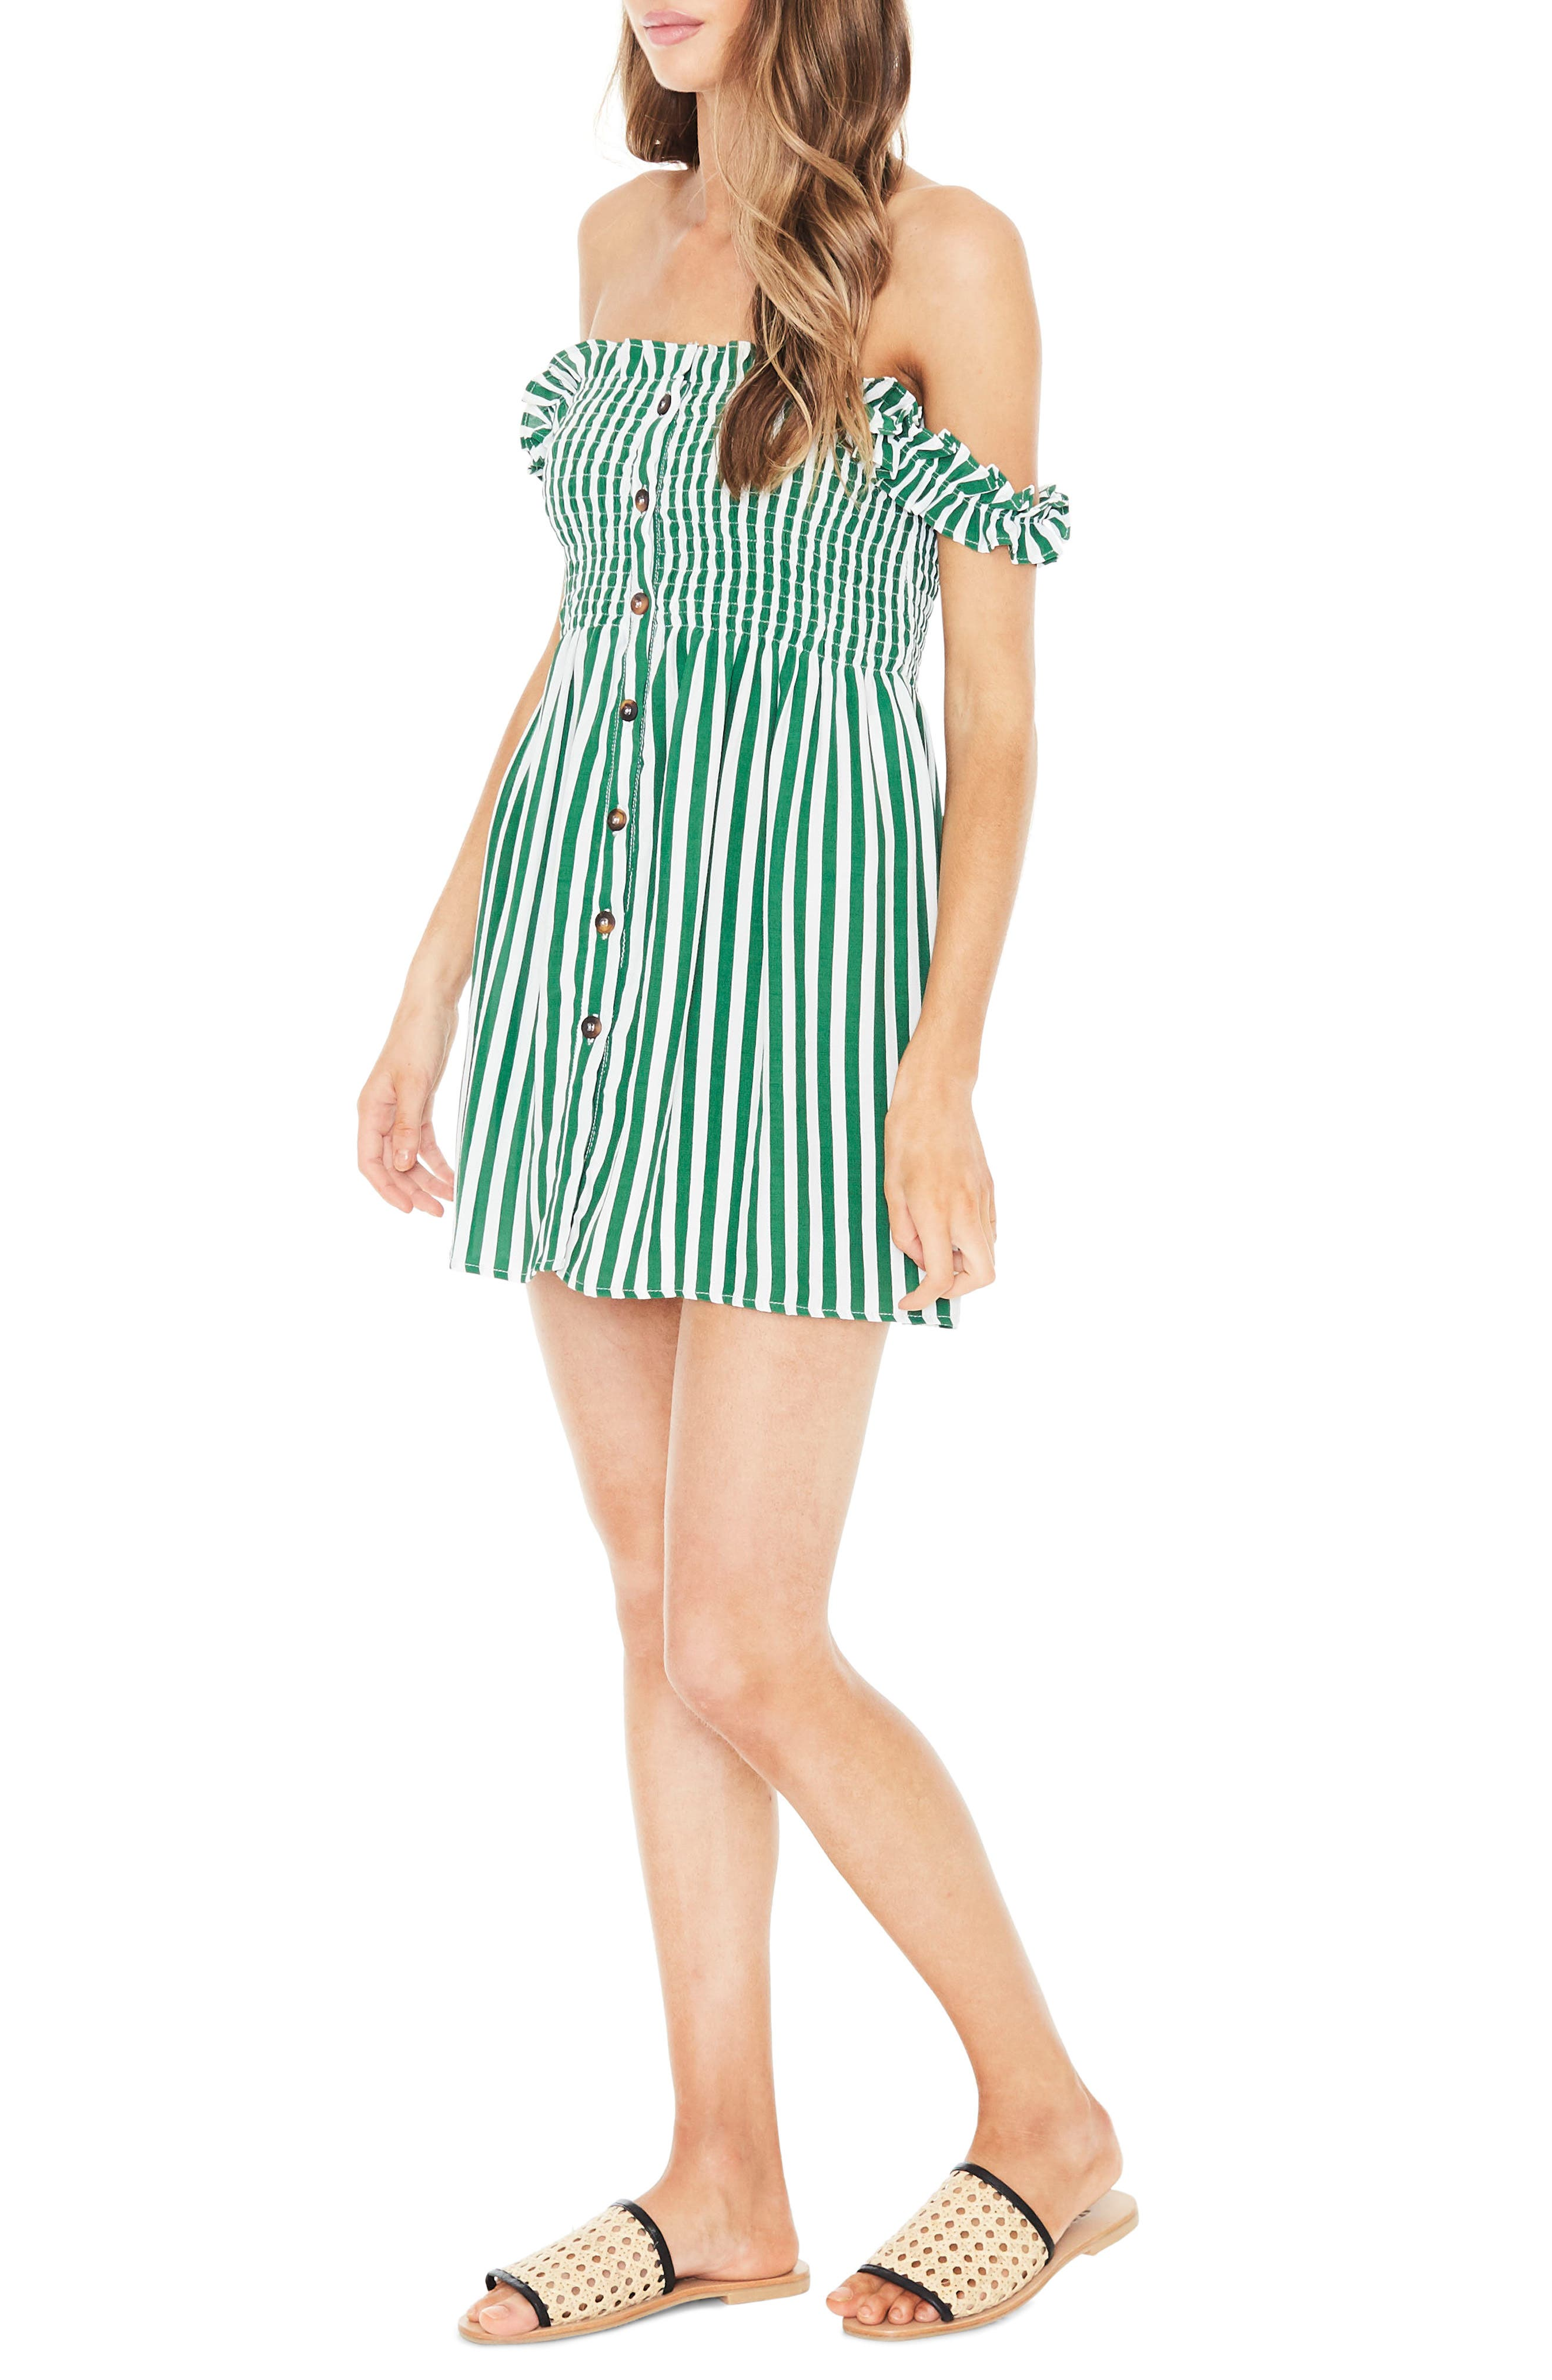 Mika Smocked Dress,                             Alternate thumbnail 3, color,                             ZEUS STRIPE PRINT